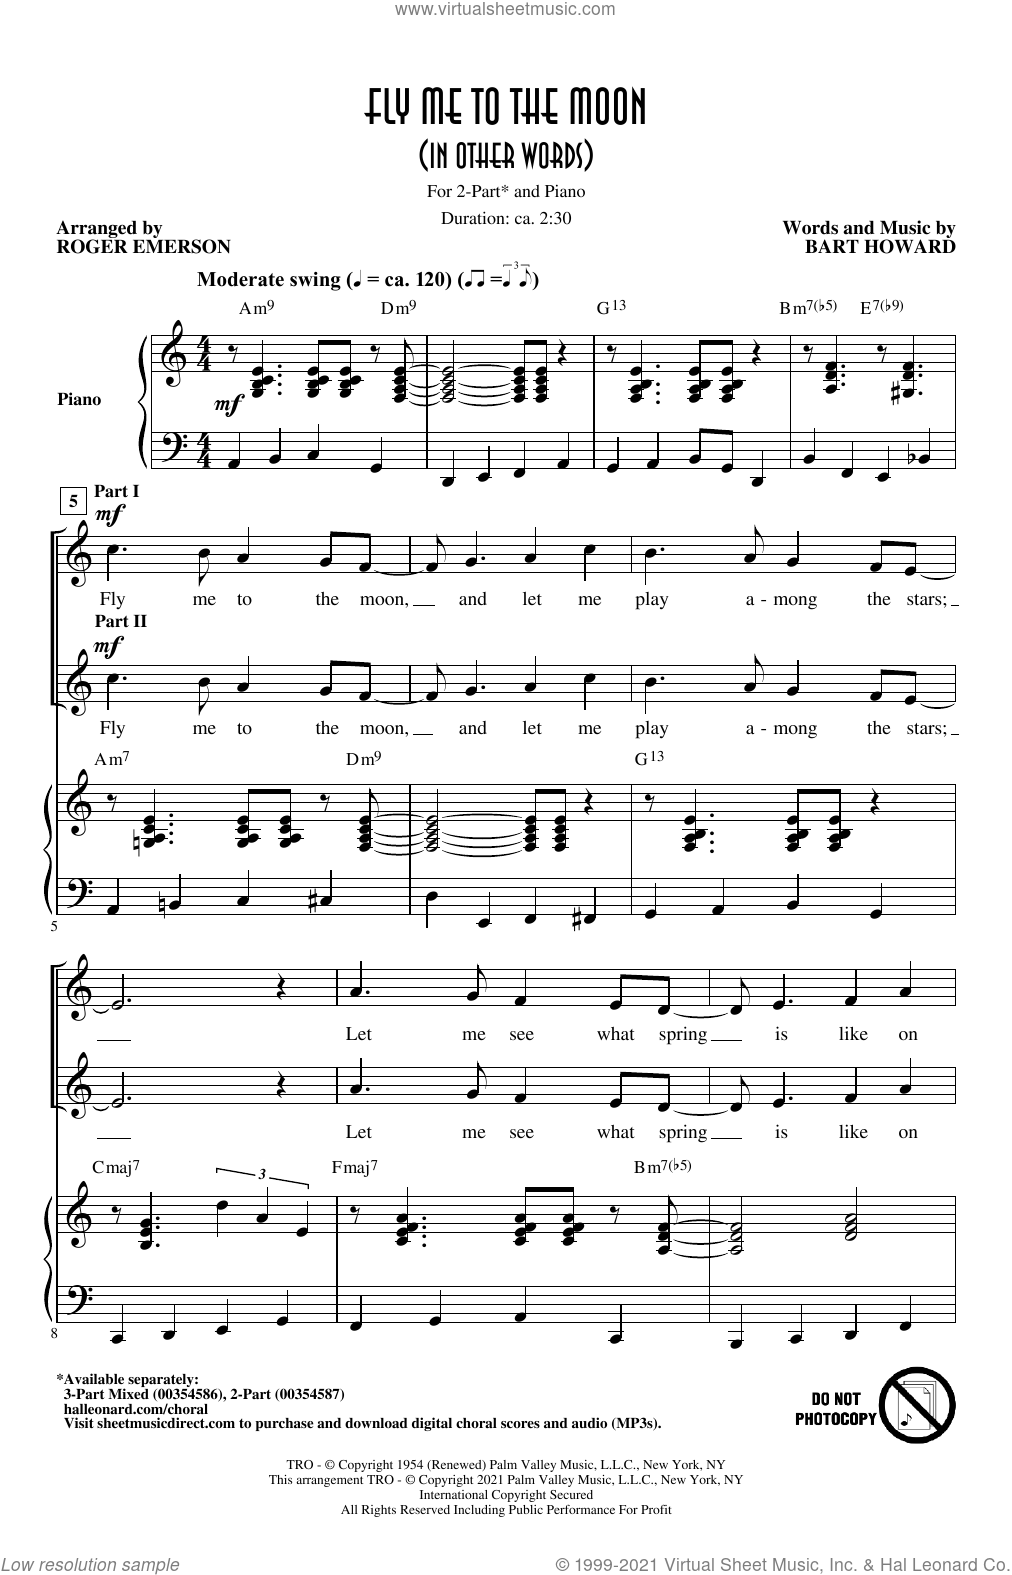 Fly Me To The Moon (In Other Words) (arr. Roger Emerson) sheet music for choir (2-Part) by Bart Howard, Roger Emerson, Frank Sinatra and Tony Bennett, intermediate duet